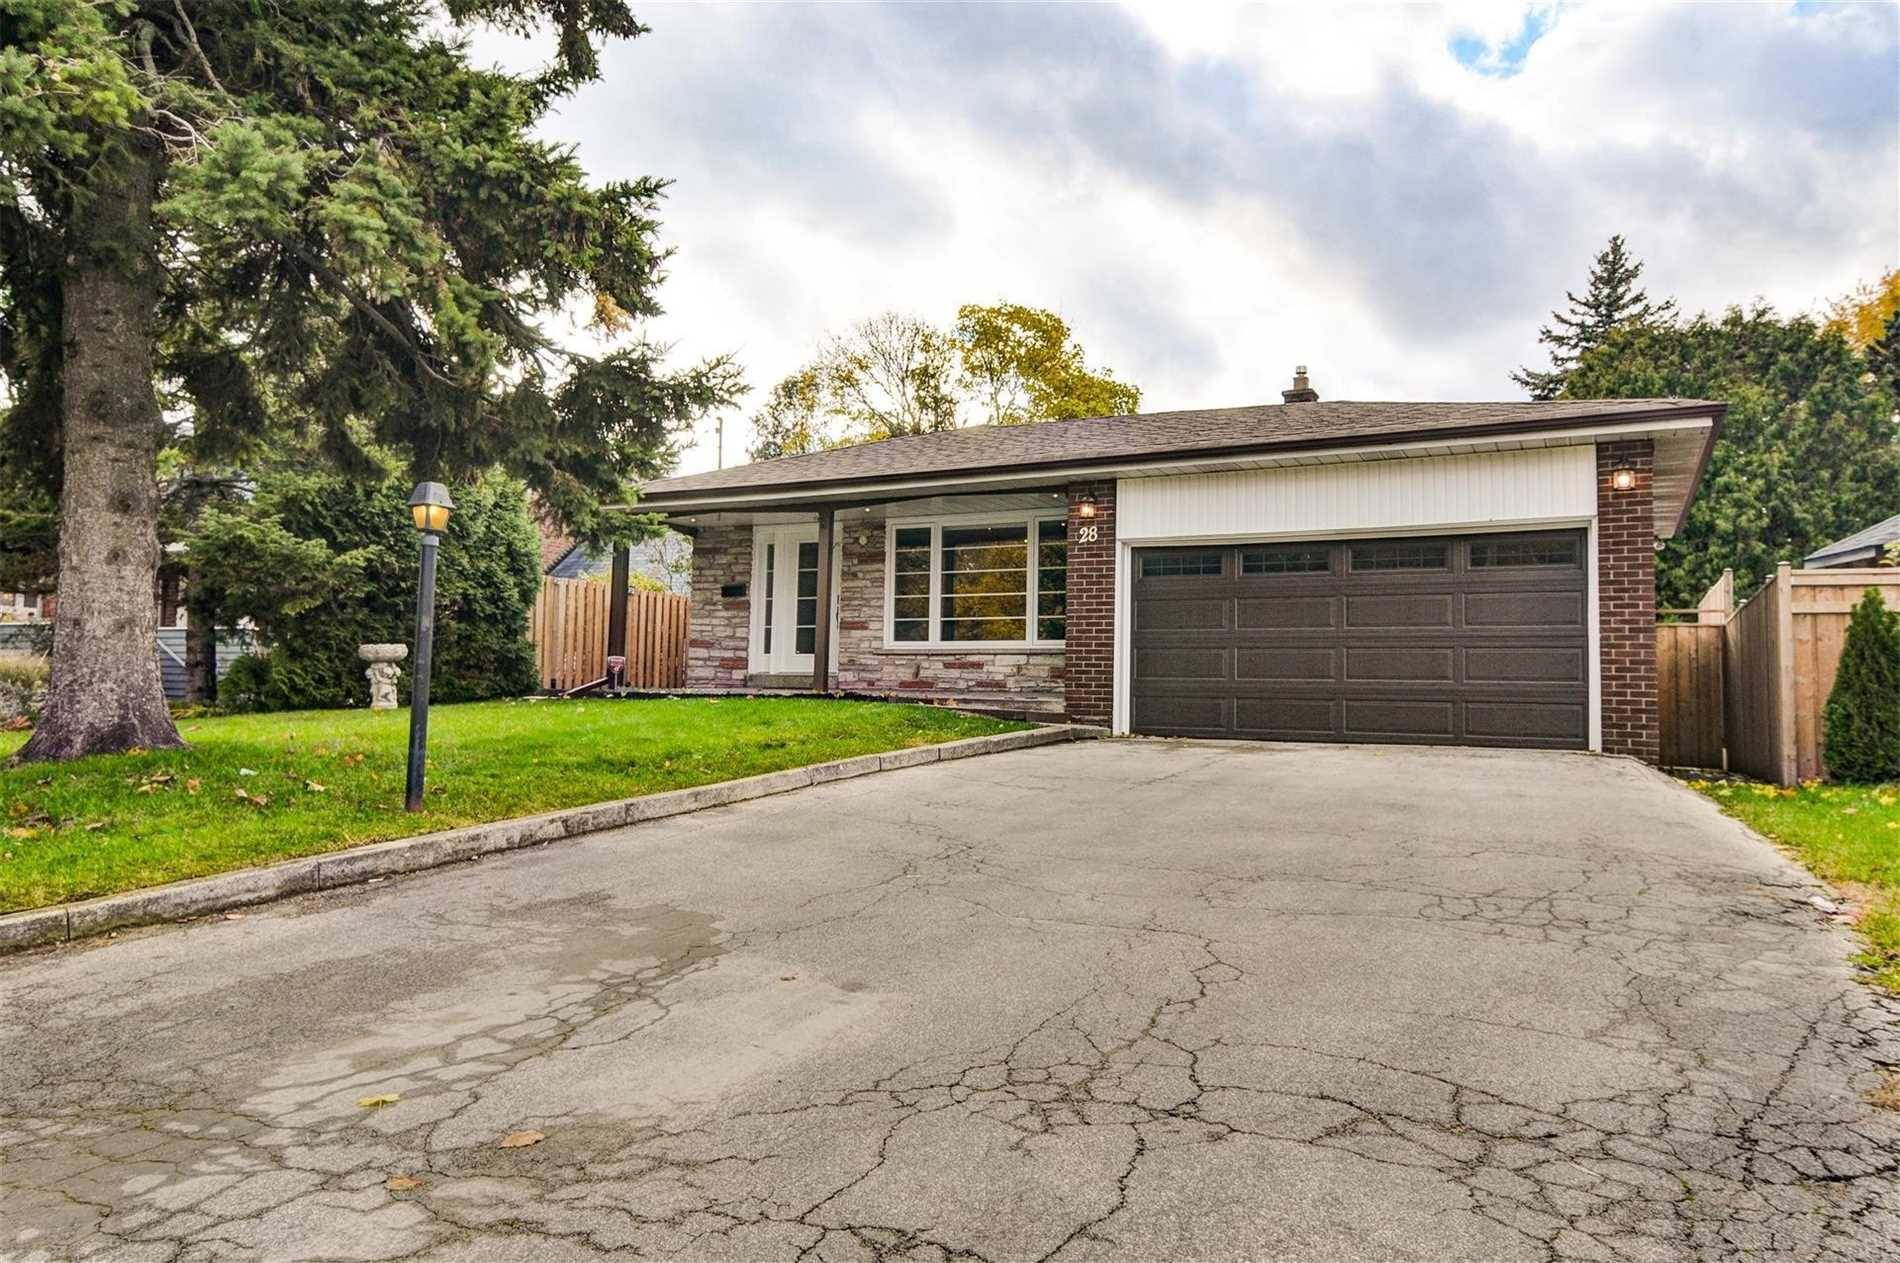 House for sale at 28 Fenwood Hts Toronto Ontario - MLS: E4414628